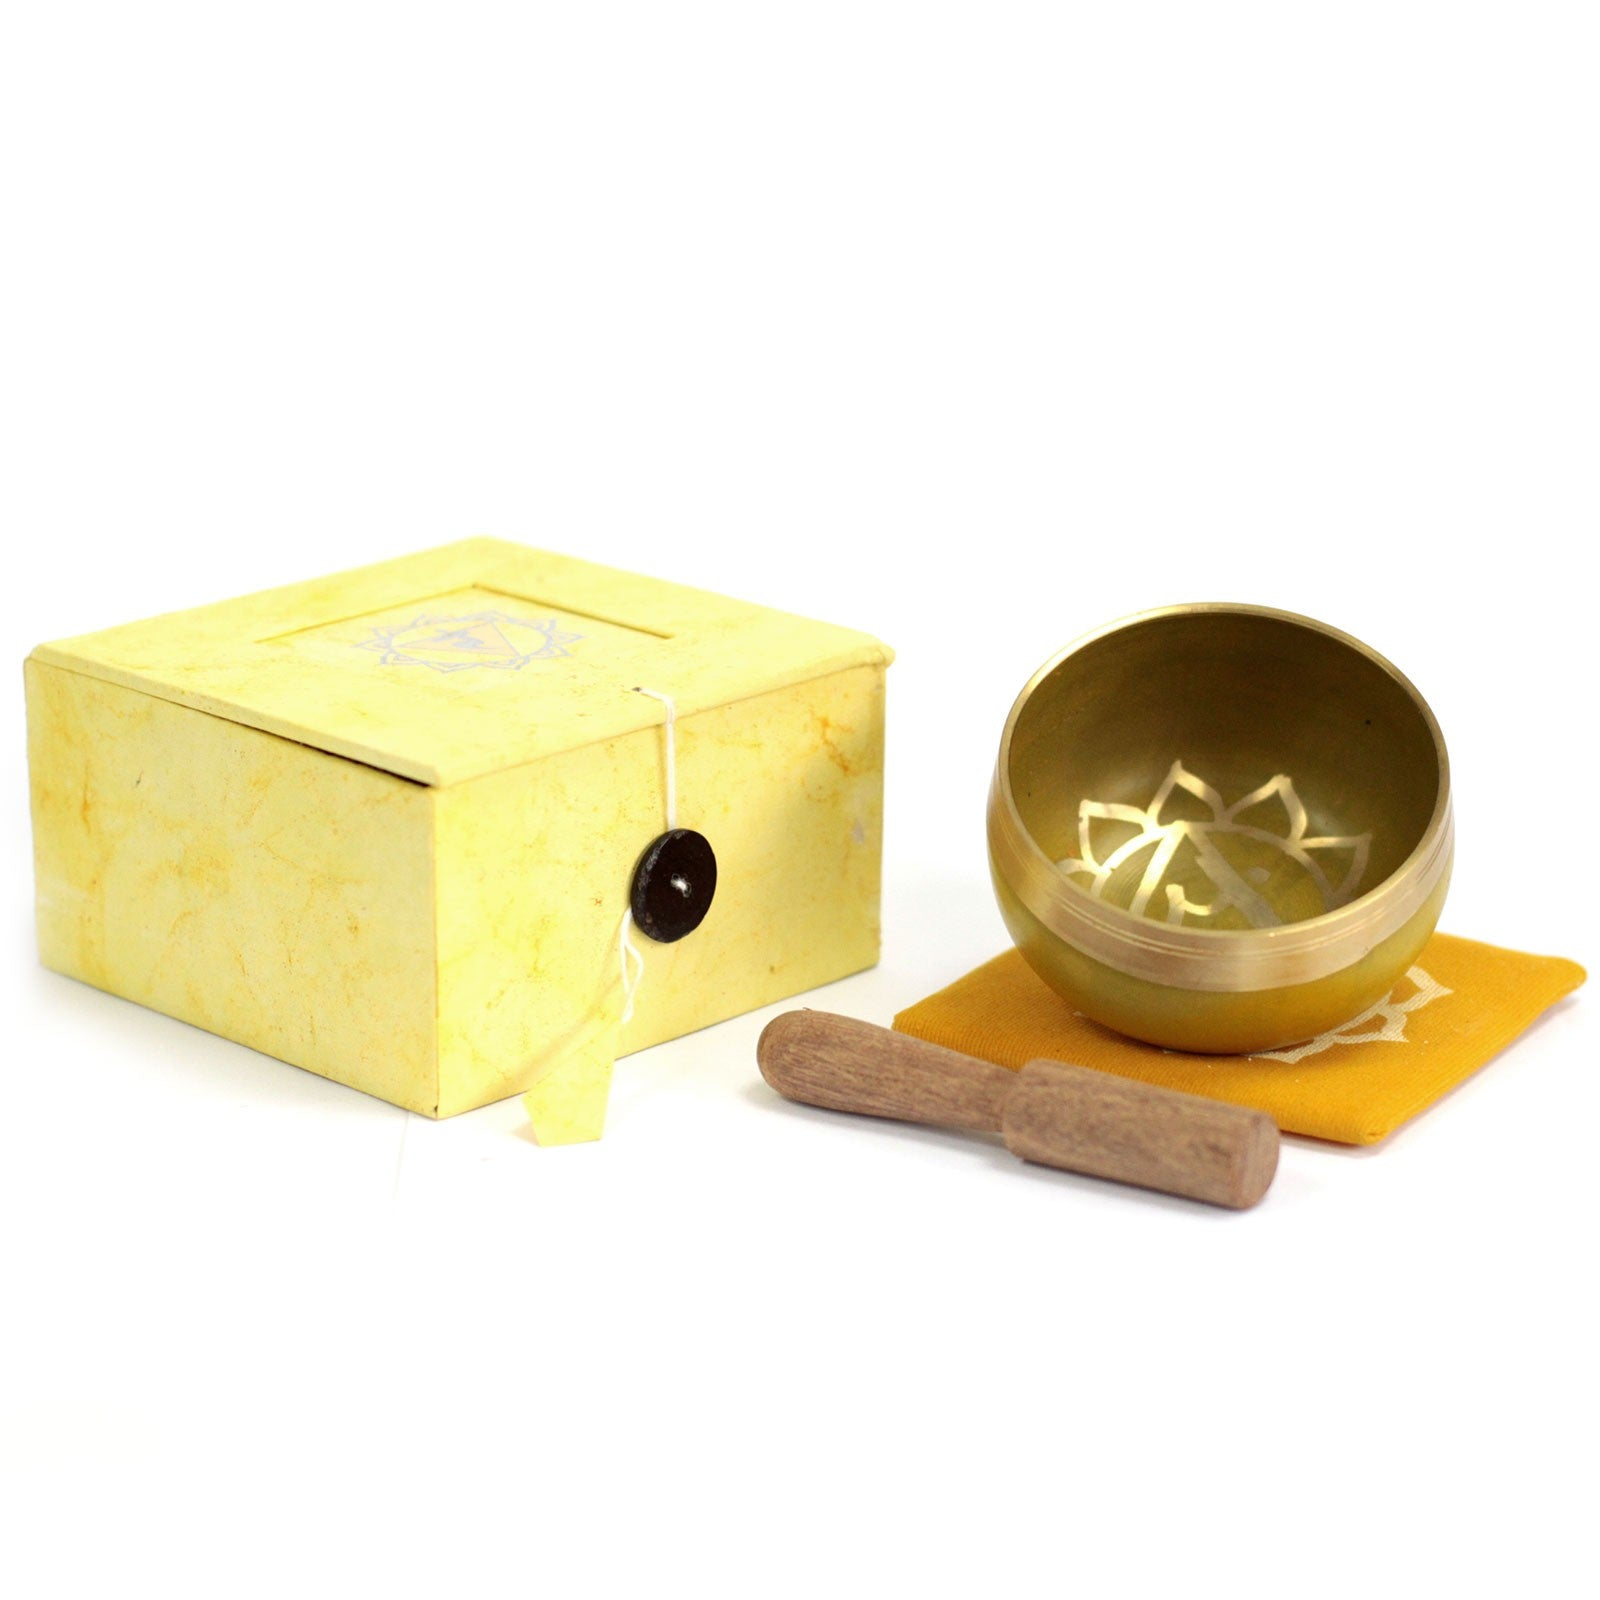 Chakra Singing Bowl - Solar Plexus, Musical Instrument & Orchestra Accessories by Gifts24-7